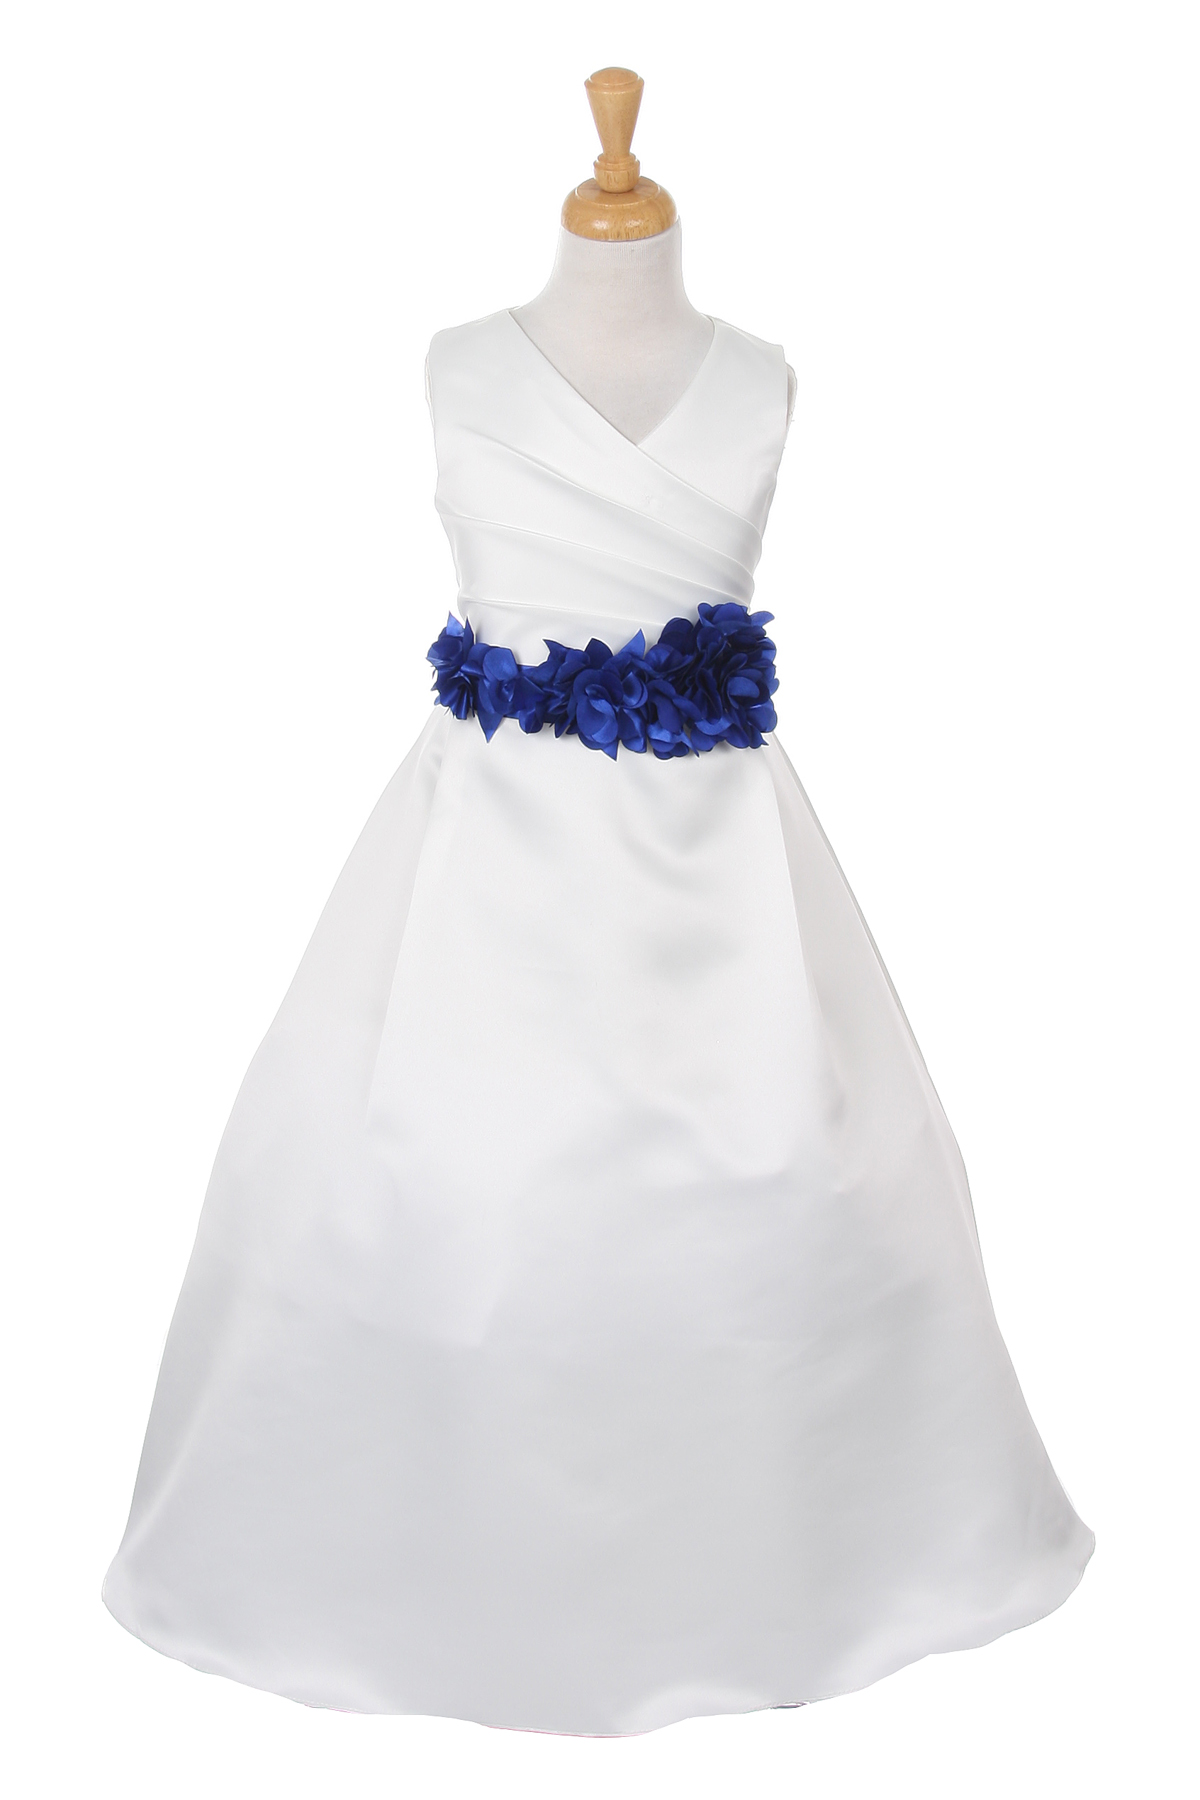 royal blue flower sash